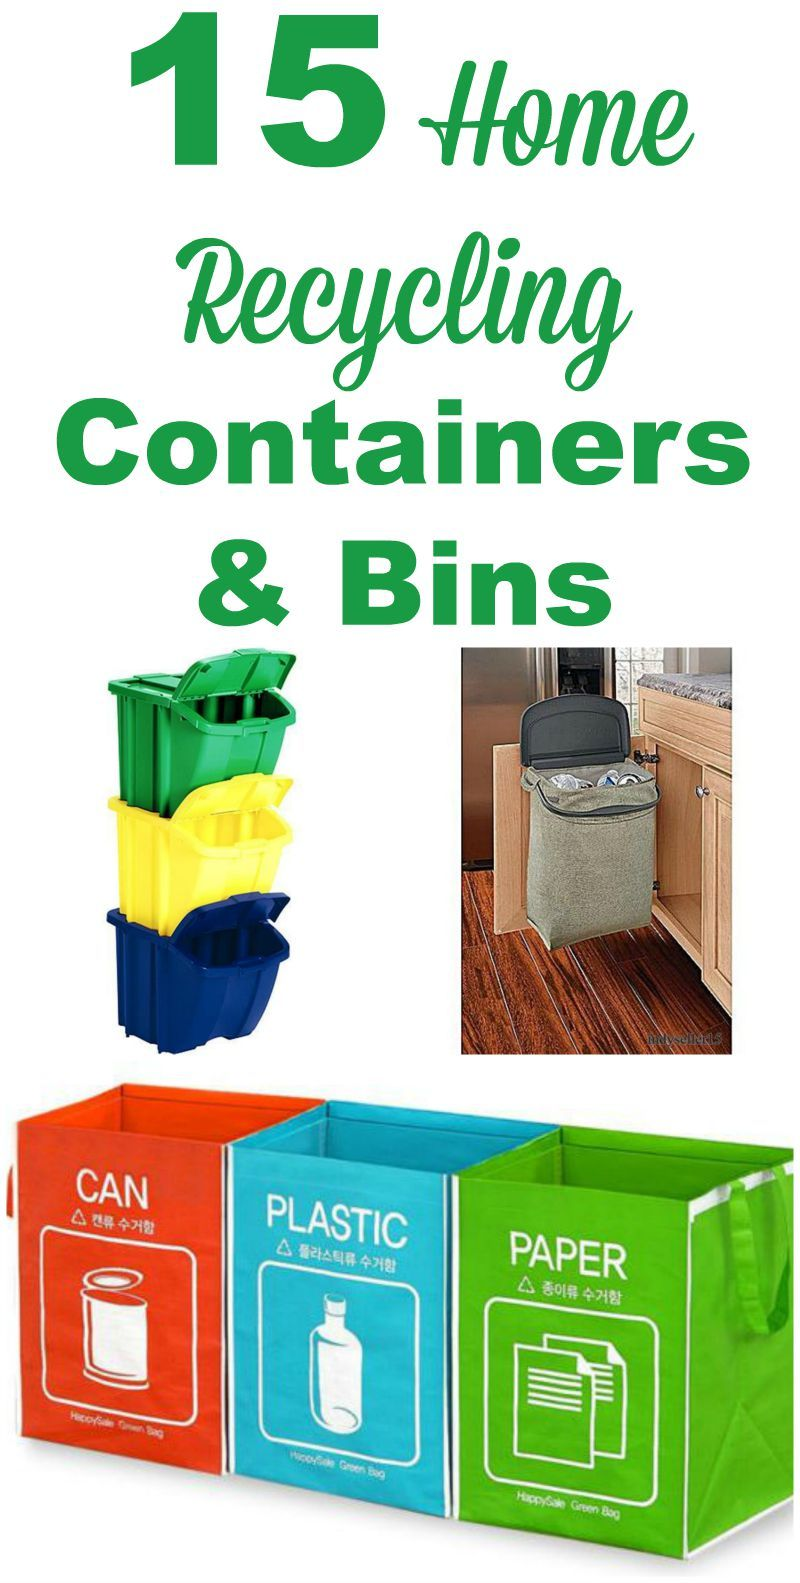 Recycle containers for home use - 15 Home Recycling Containers And Bins You Can Use To Make Recycling More Convenient And Attractive